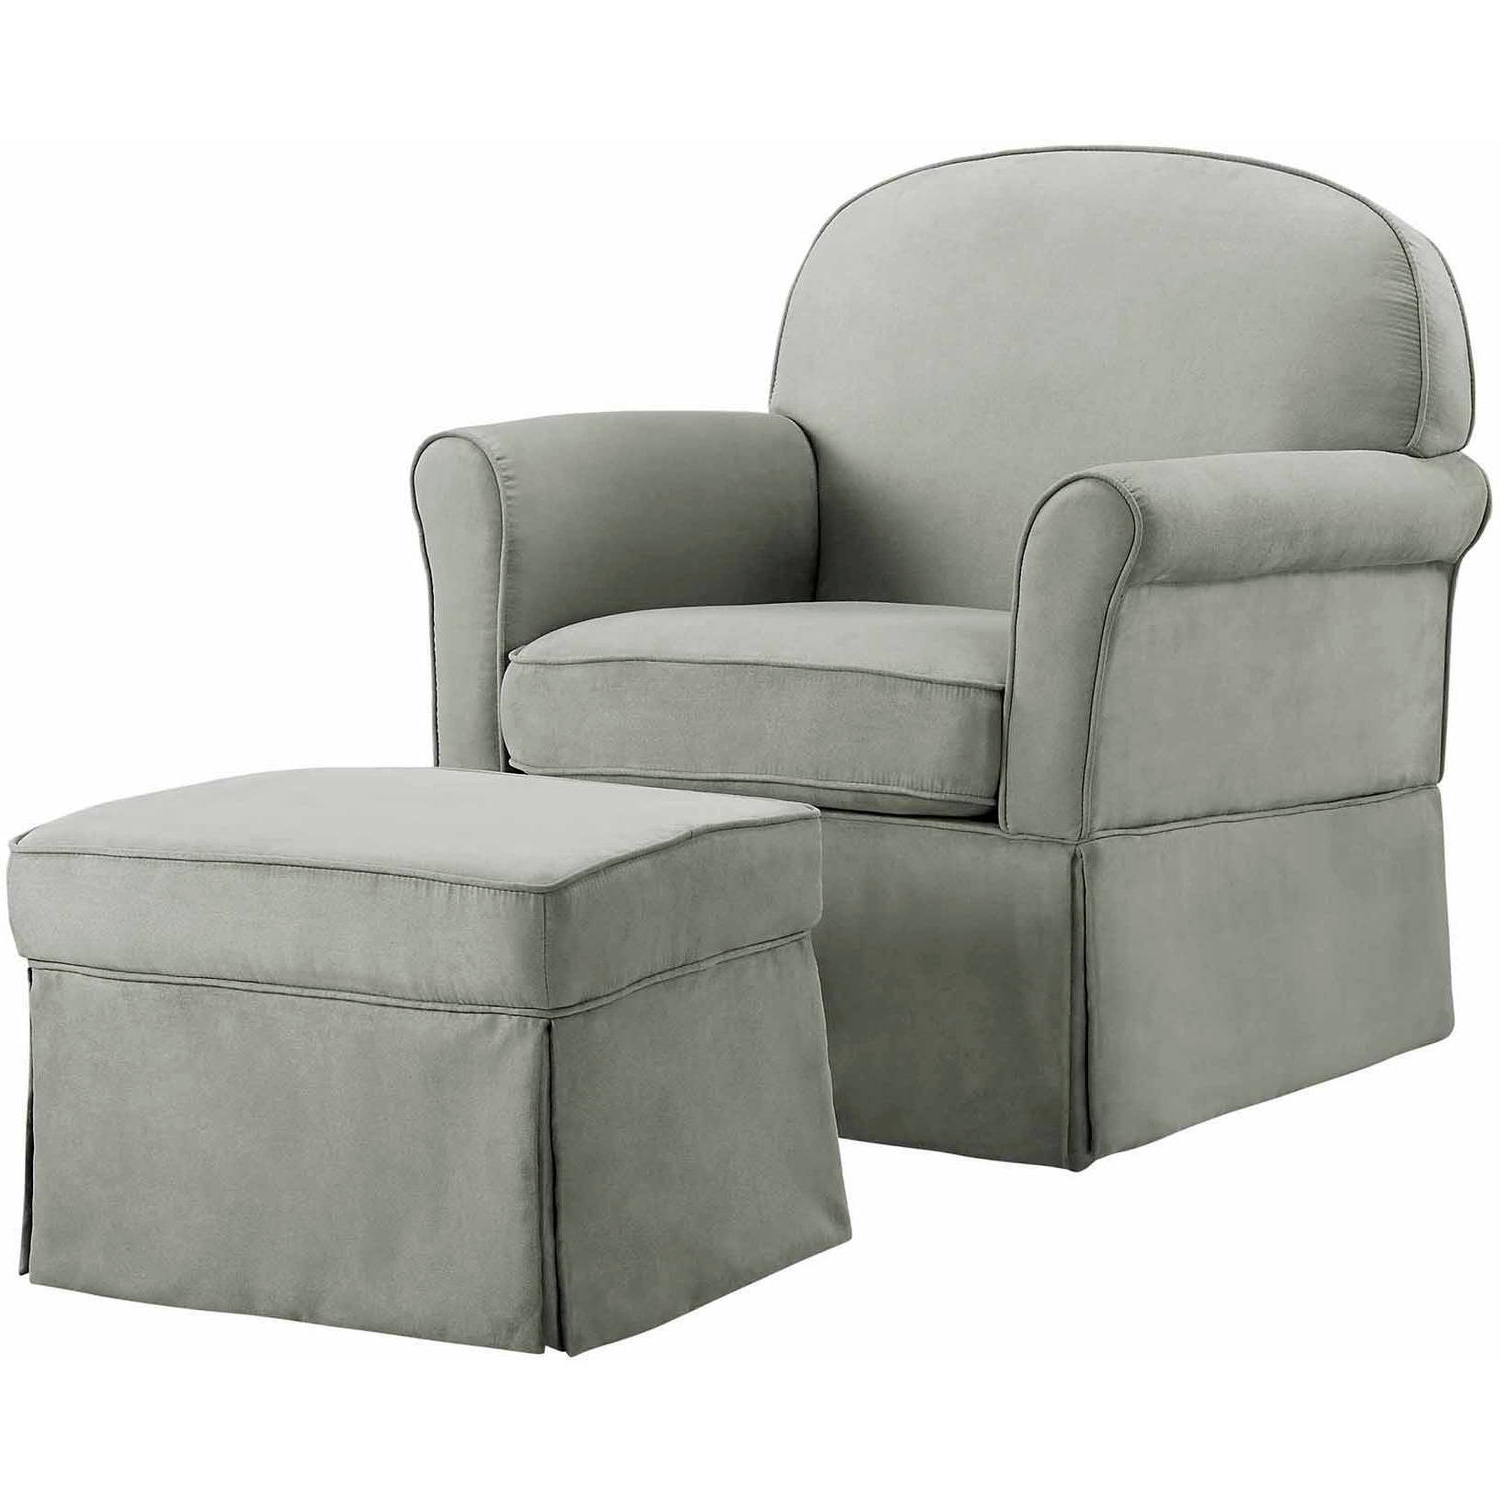 Gliders With Ottoman With Best And Newest Baby Relax Evan Swivel Glider And Ottoman Gray – Walmart (View 3 of 15)